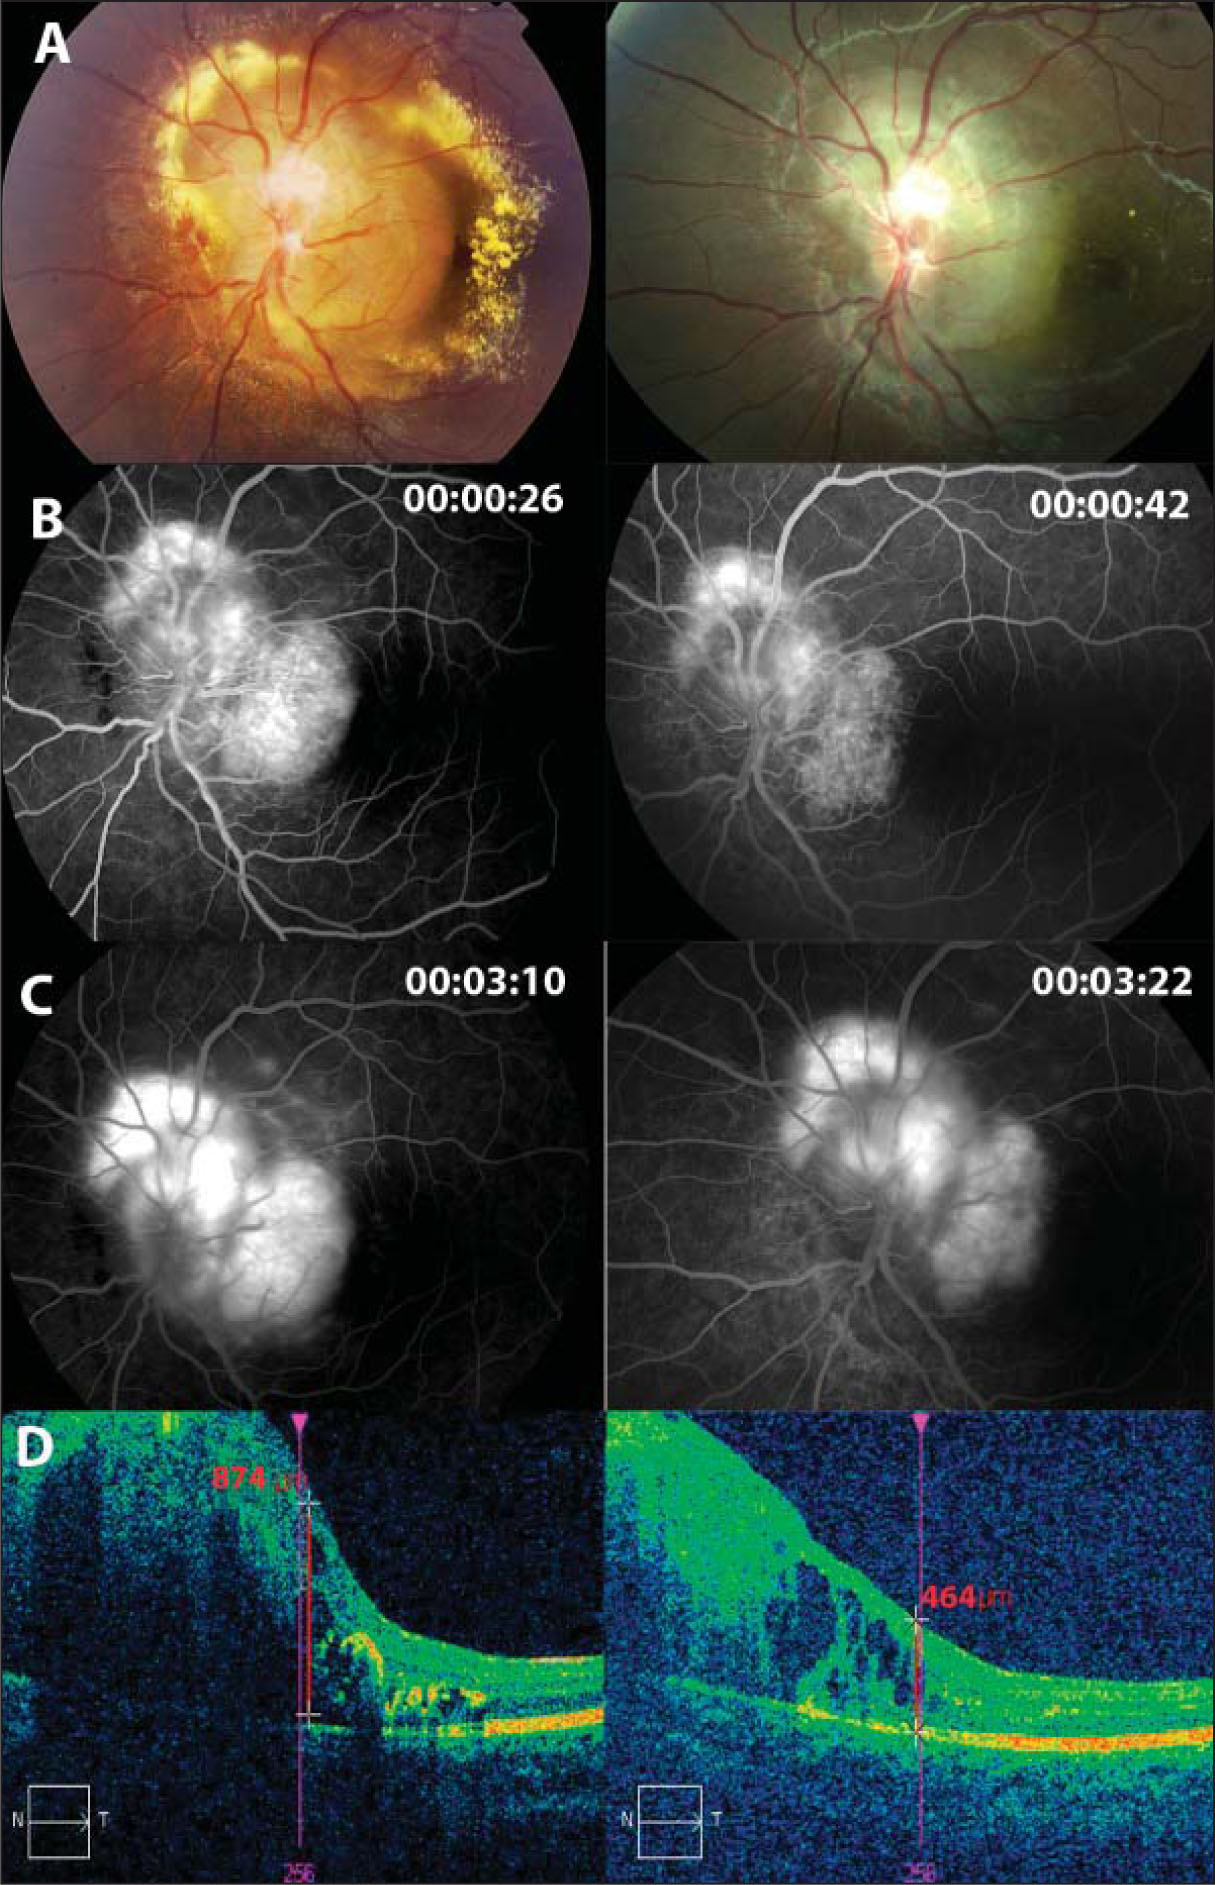 Clinical images before (left) and after (right) treatment. (A) Ophthalmoscopy shows the tumor in the superotemporal side of the optic disc surrounded by serous retinal detachment and abundant lipid exudation (left). Six months later, there is marked shrinkage and increased fibrosis of the tumor, as well as a decrease in exudation (right). (B) Early fluorescein angiography images show early, rapid filling of the lesion (left). Note the decrease in vascular density after treatment (right). (C) Late fluorescein angiography images show extensive late leakage of dye into the subretinal space (left). Note a decrease in leakage of the dye from the tumor after treatment (right). (D) Optical coherence tomography images, which include the central macula.